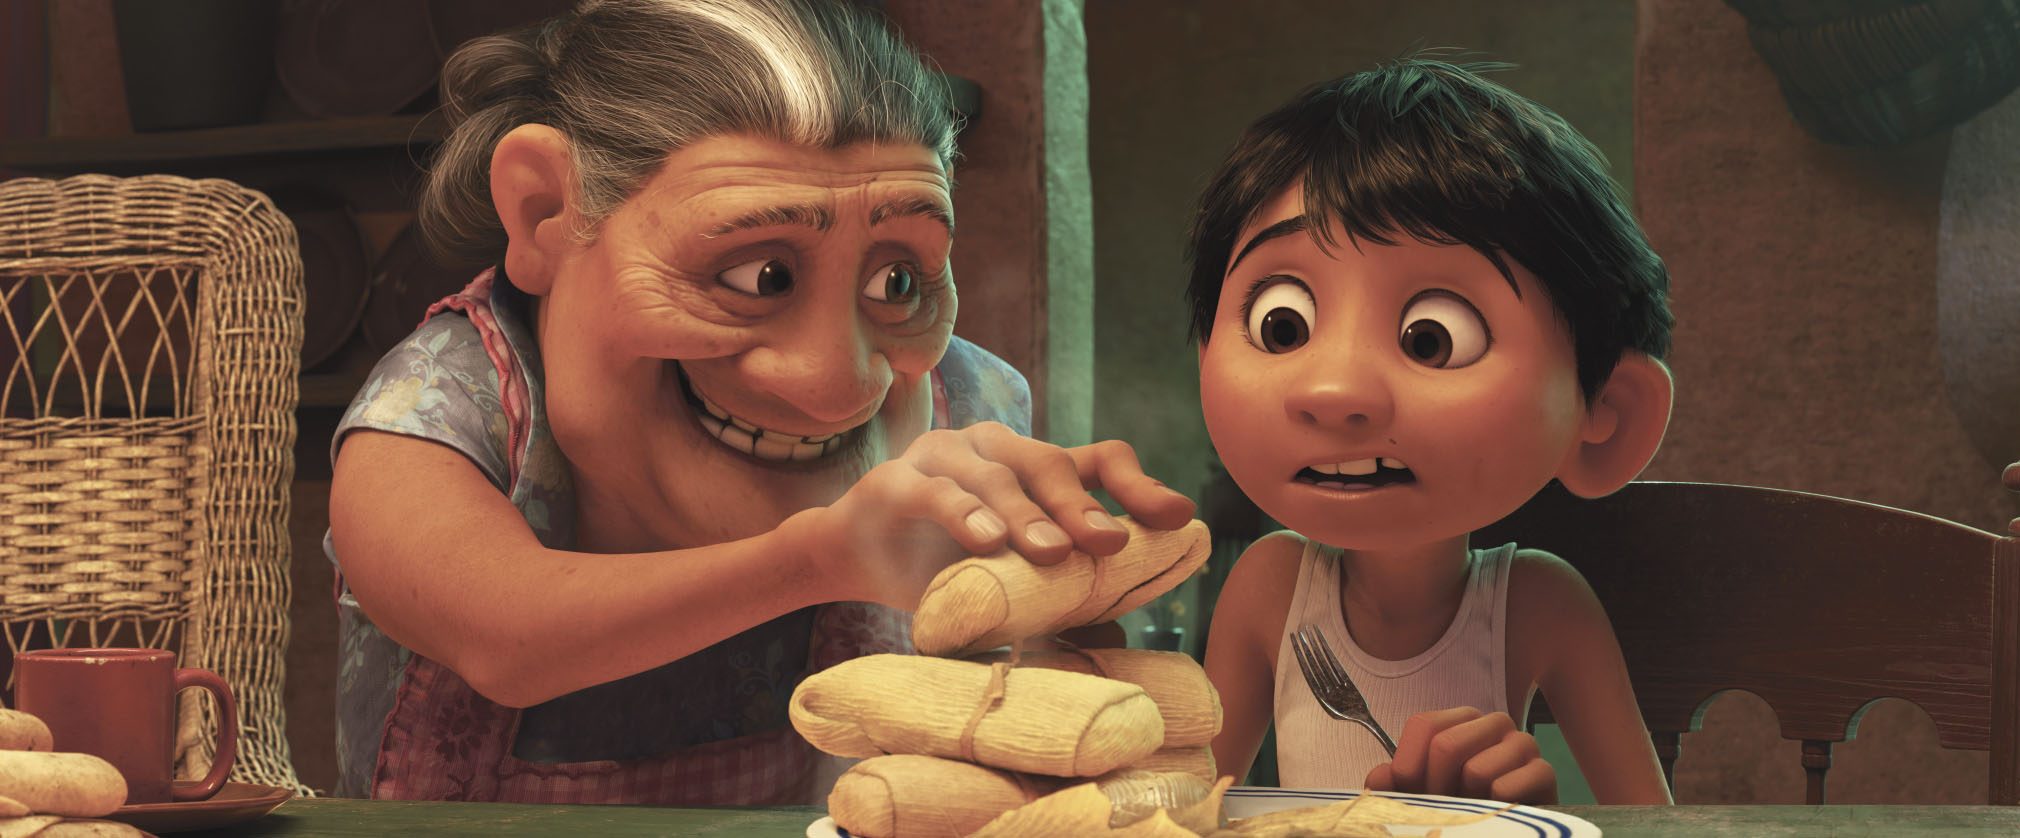 Q A This Pixar Artist Sees His Jewish Grandma In Coco J See what coco_2 (coco_2) has discovered on pinterest, the world's biggest collection of ideas. pixar artist sees his jewish grandma